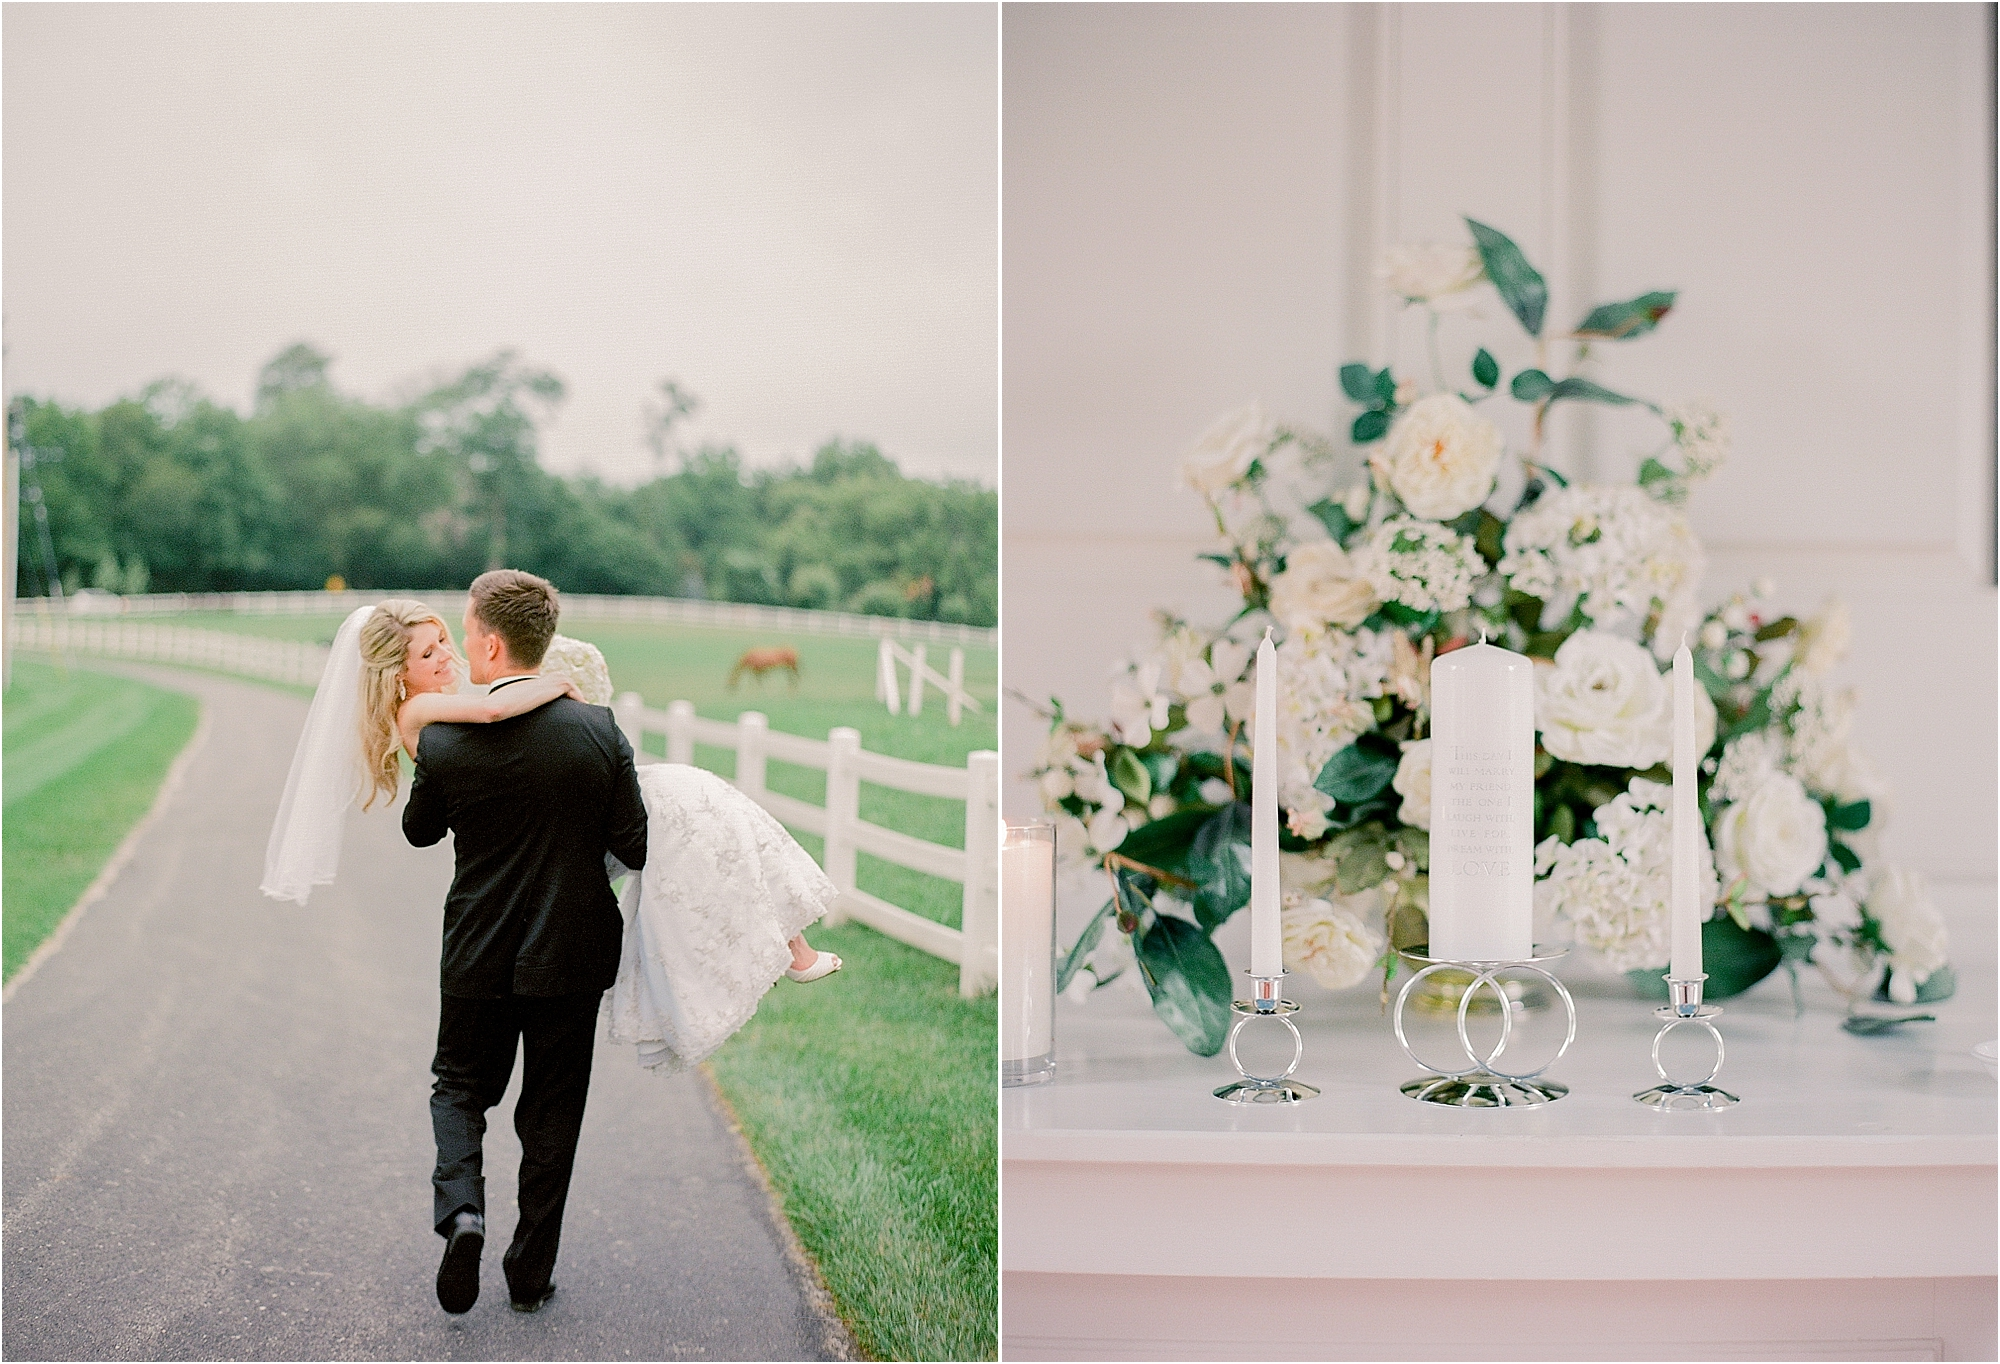 The Do's and Don'ts of Creating a Wedding Submission - Jordan Brittley Photography